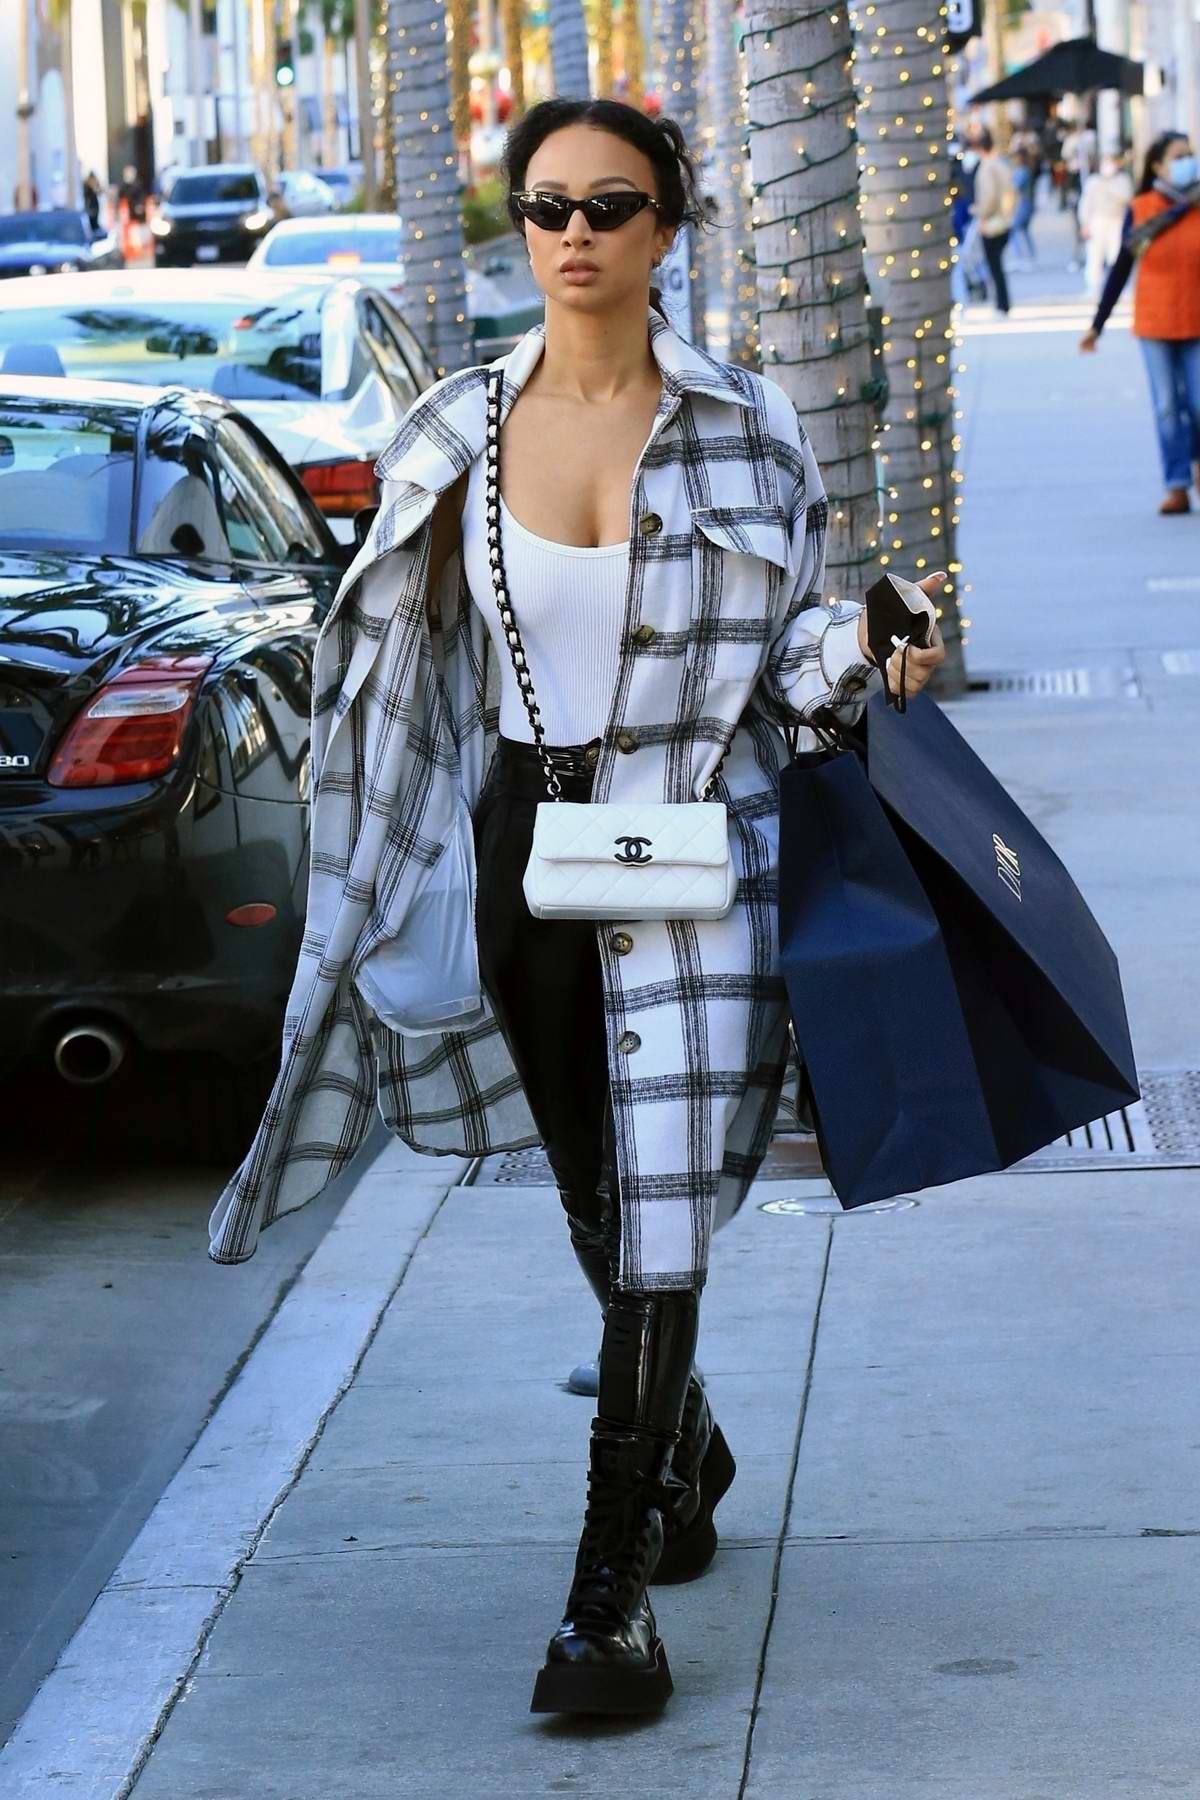 Draya Michele looks casually chic while out shopping on Rodeo Drive in Beverly Hills, California